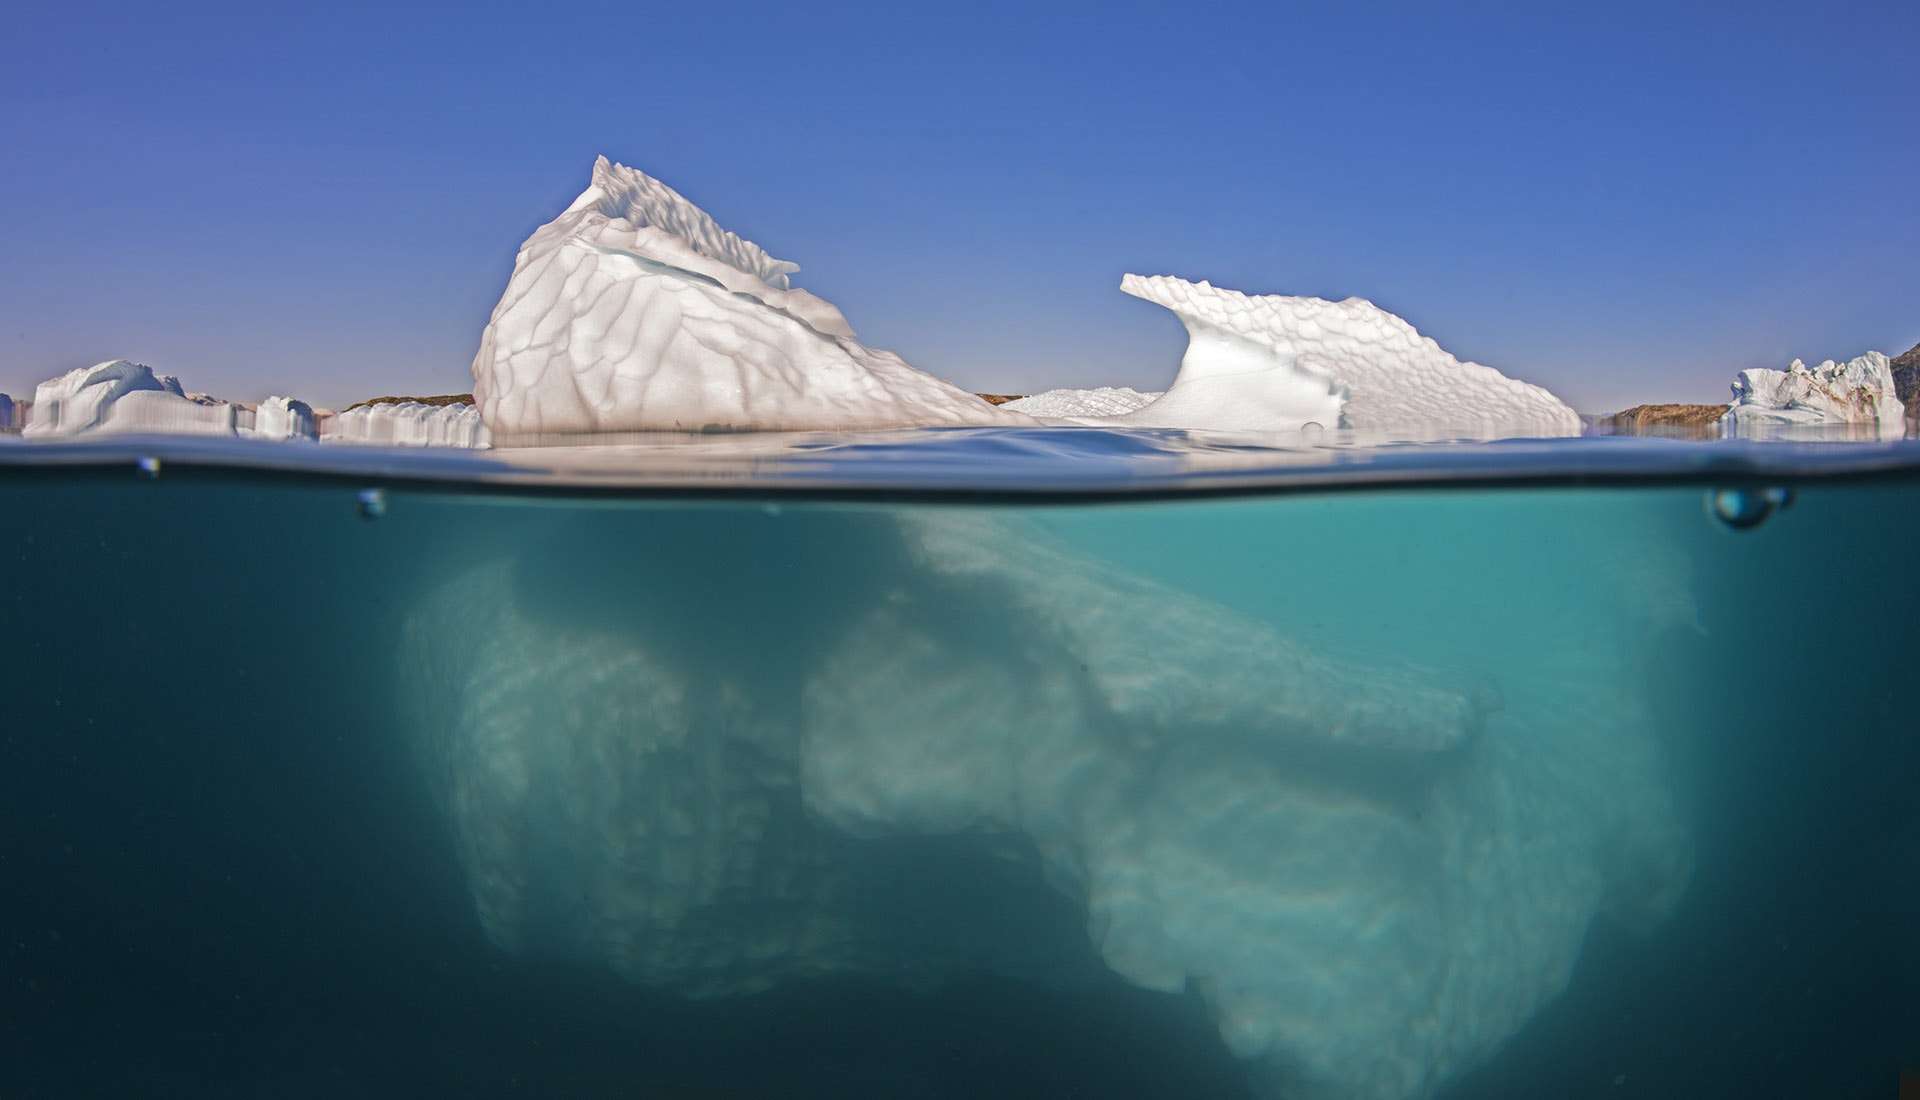 In Greenland, the only thing larger than whales are icebergs. Until you get in the water, you do not understand just how big they are, says Dhritiman. Above the water, the icebergs are hard, sharp, and sculpted, but viewed from underwater they take on a softness and otherworldly quality.